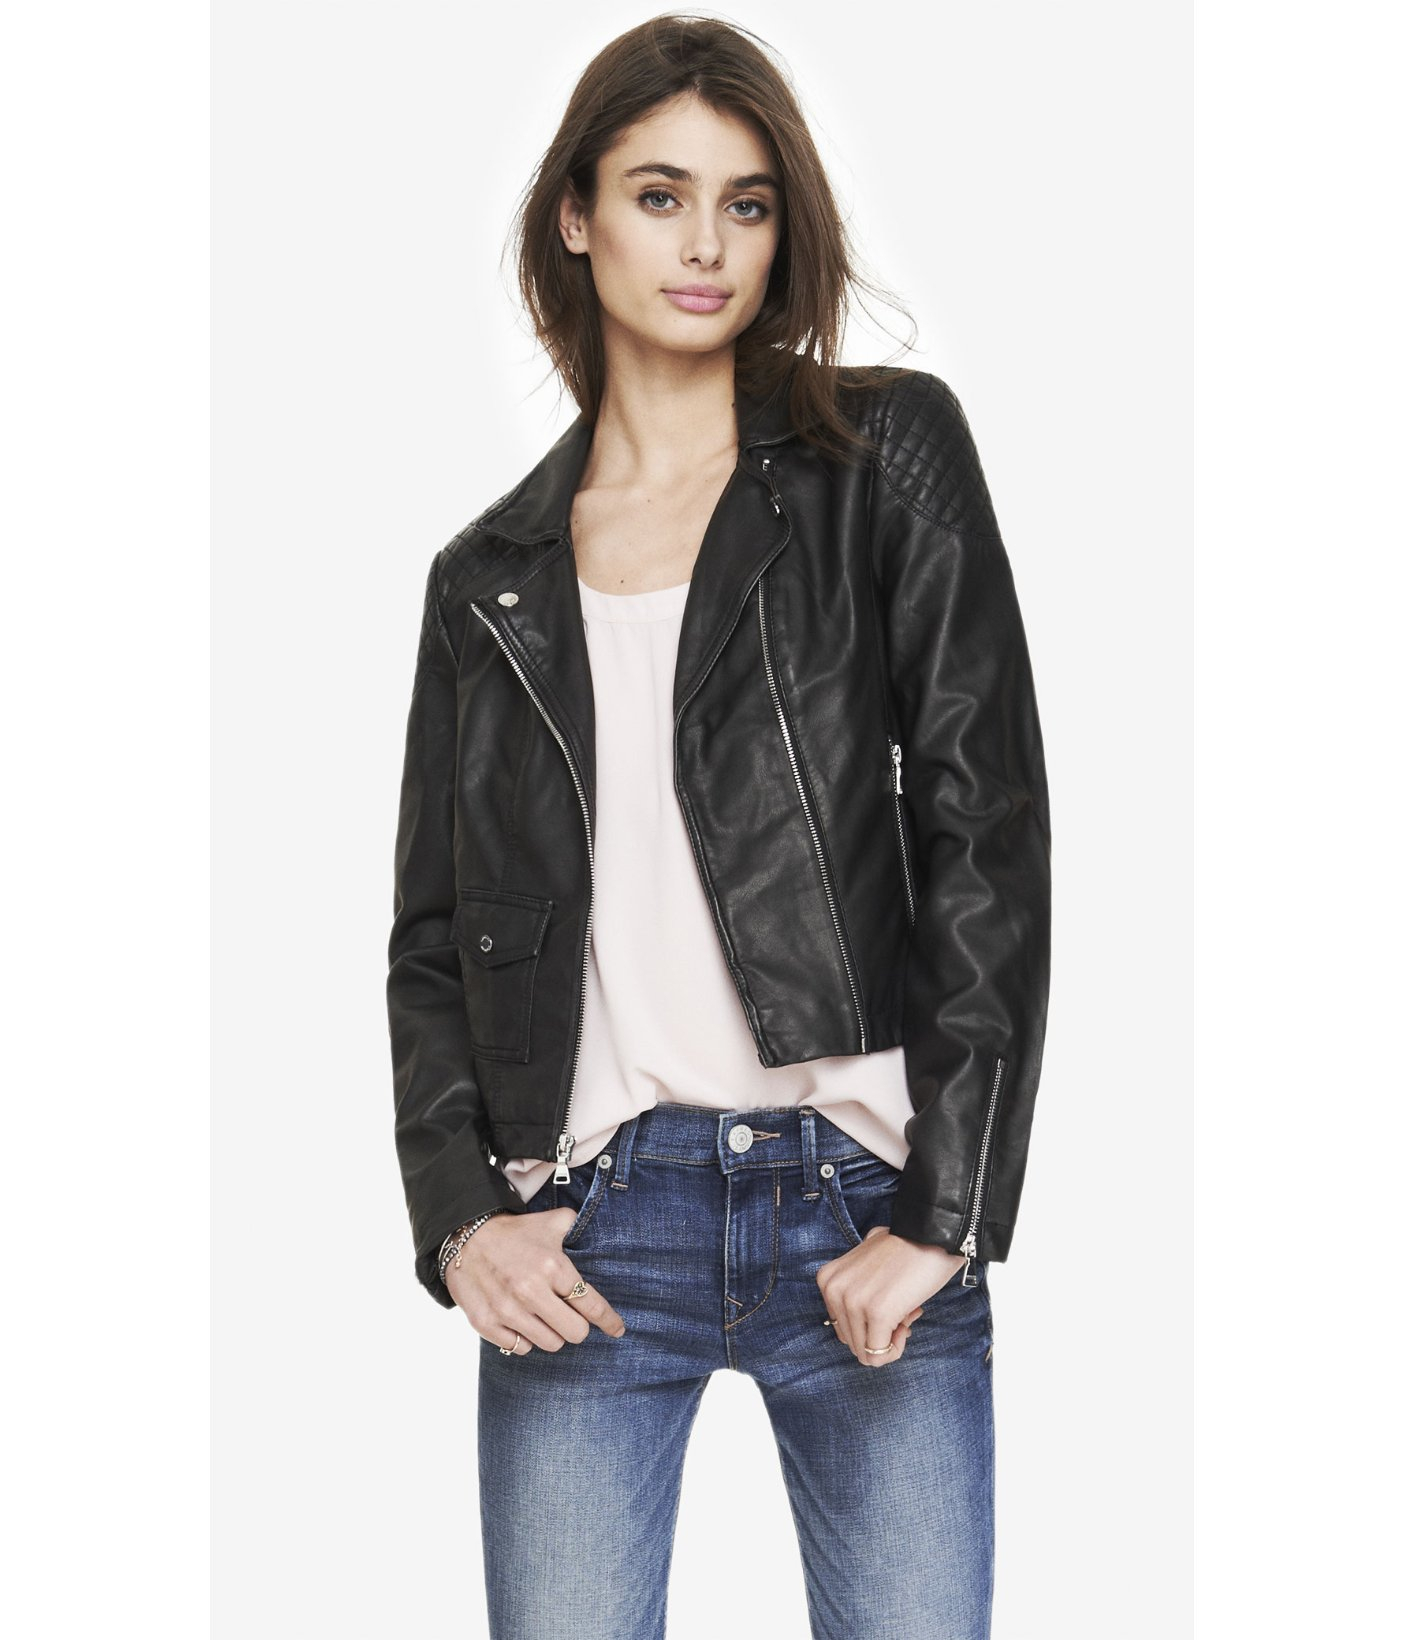 Lyst - Express (Minus The) Leather Diamond Quilted Moto Jacket in ... : express quilted leather jacket - Adamdwight.com